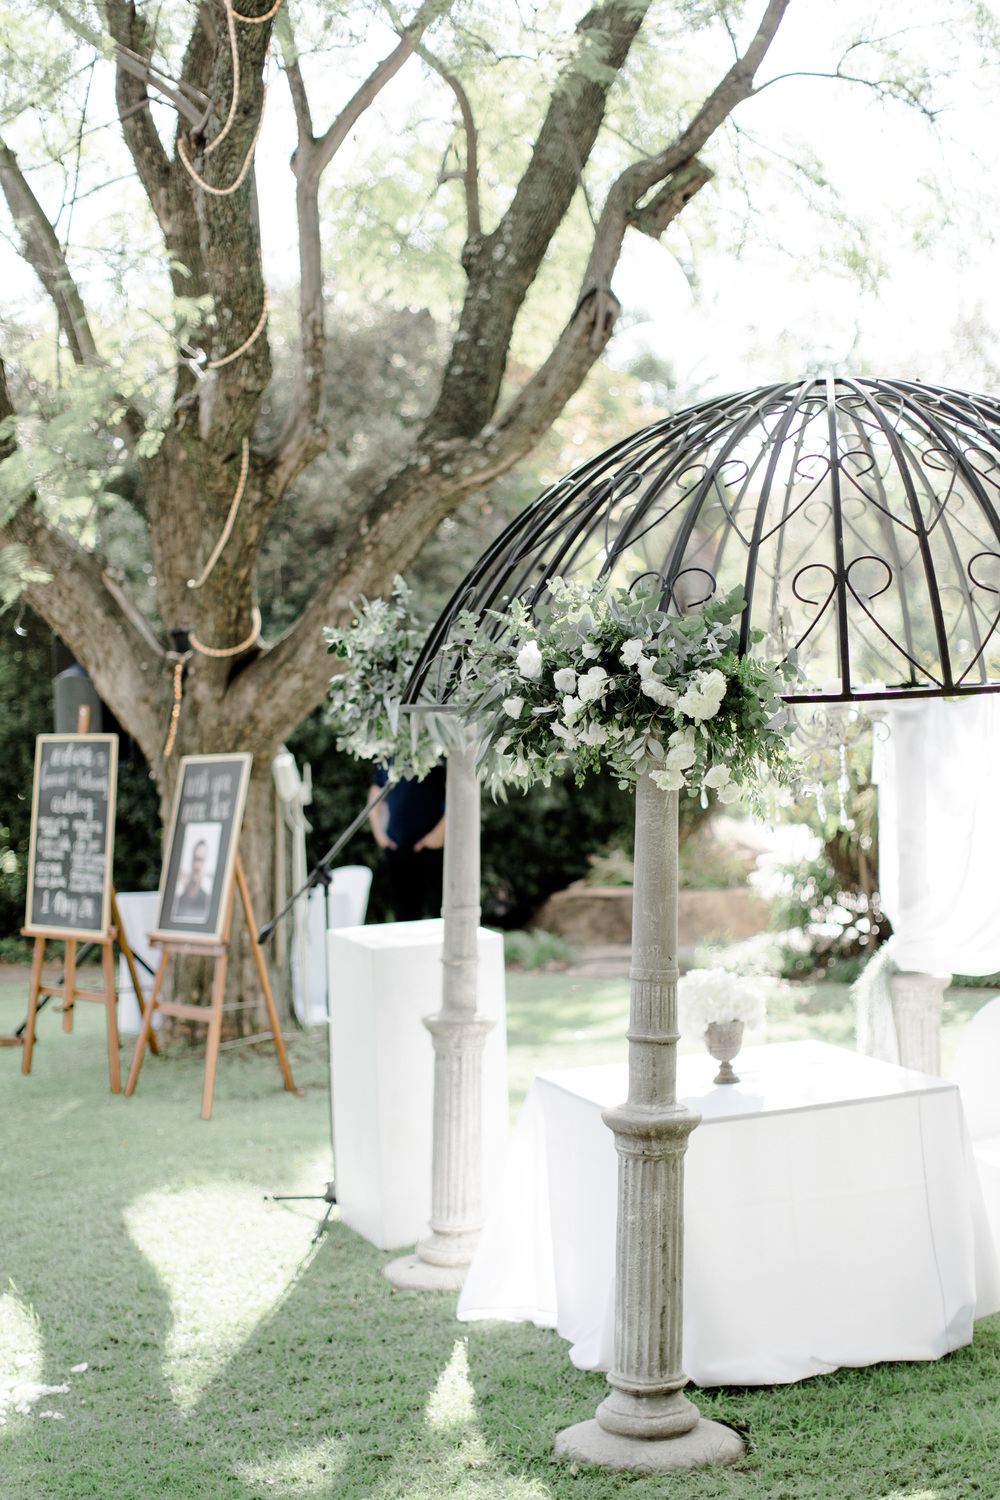 long Meadow johannesburg wedding venue photographer_037.jpg